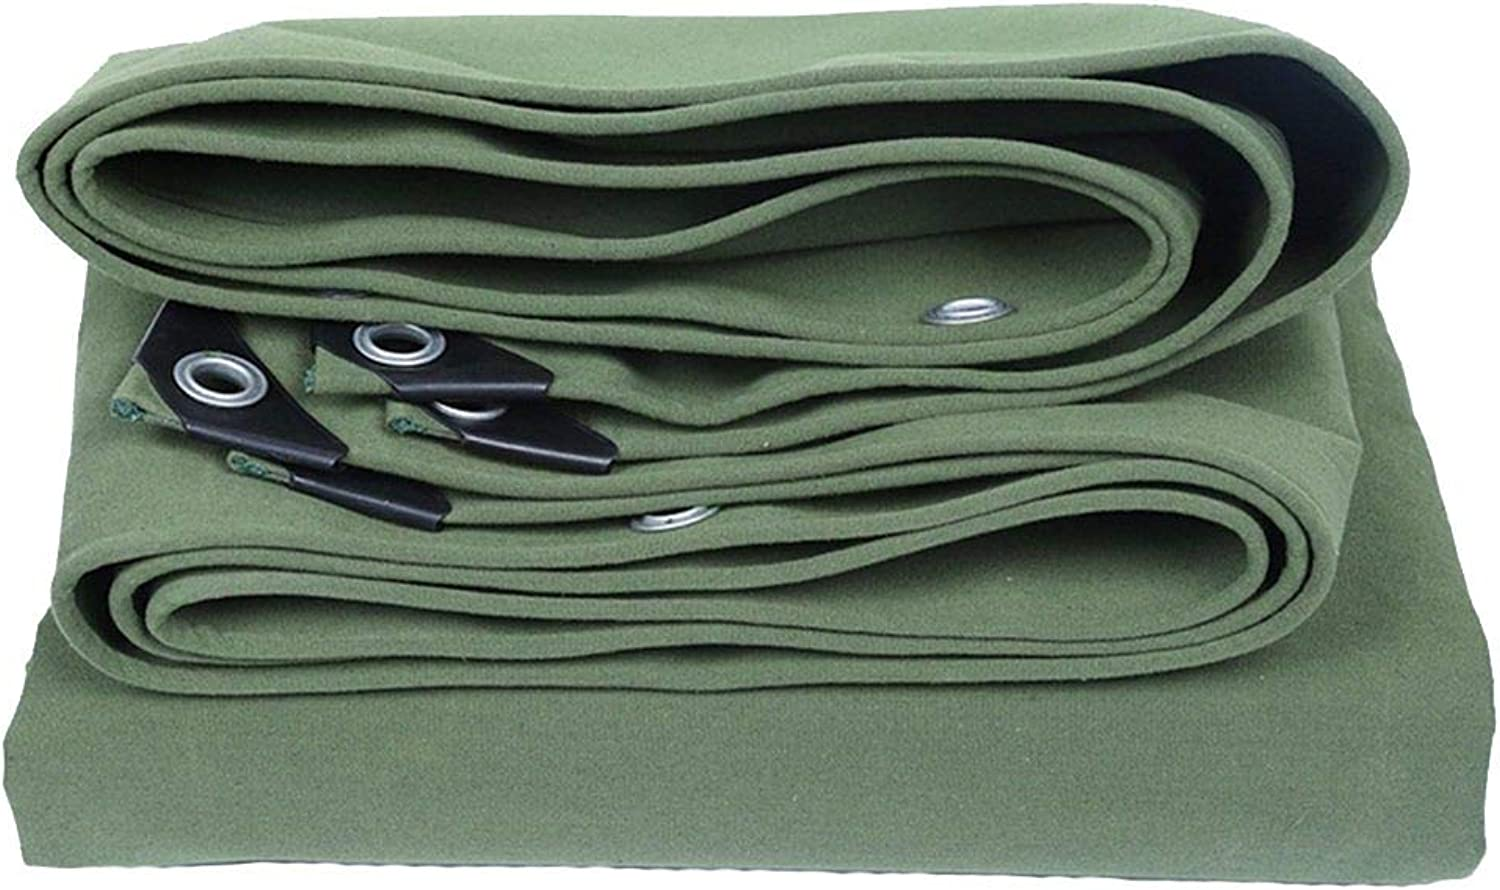 Waterproof Tarpaulin, Tarp with Eyelets Awning Tent Ground Sheet Covers Heavy Duty Rainproof Sun Predection, 400g M2 GAOFENG (color   Green, Size   5  7m)